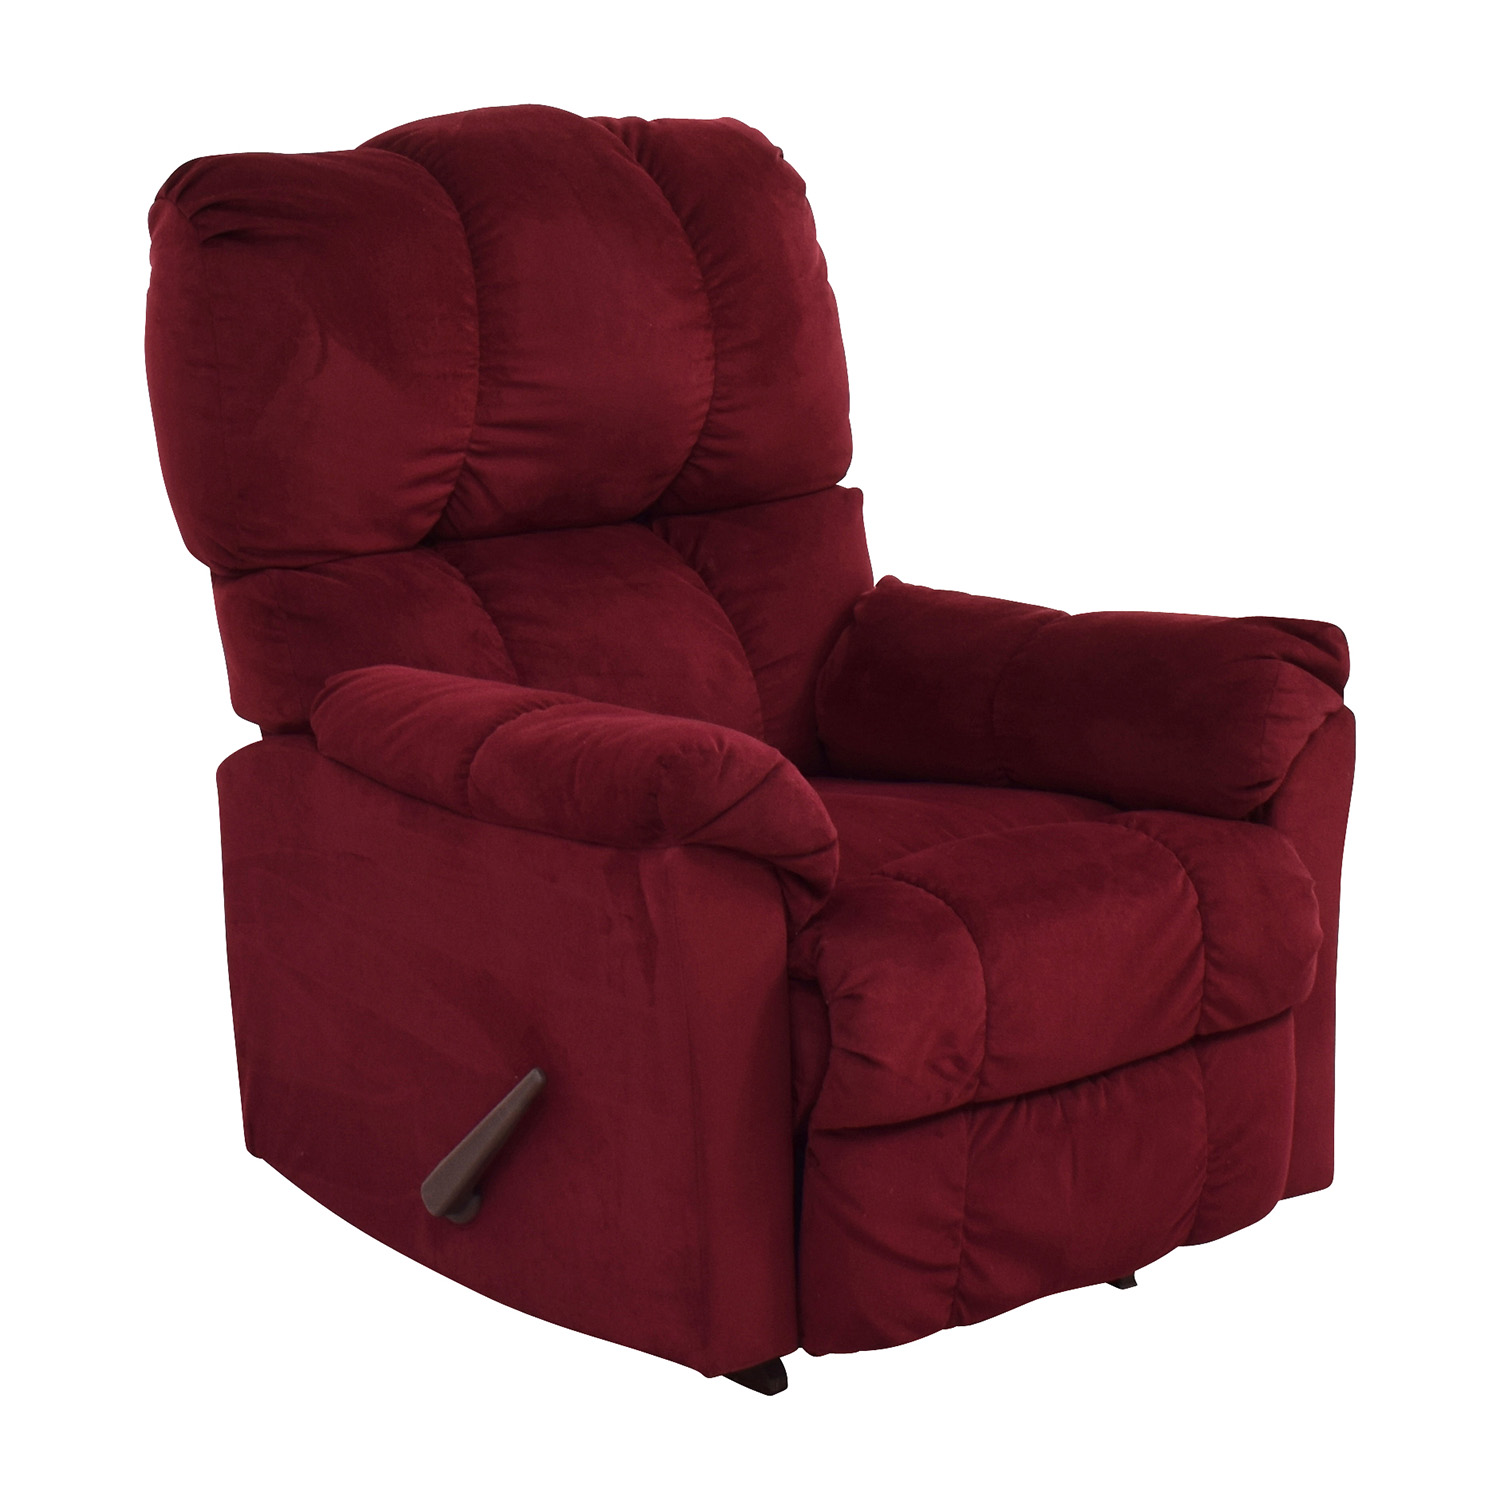 Macys Macys Red Recliner Arm Chair red